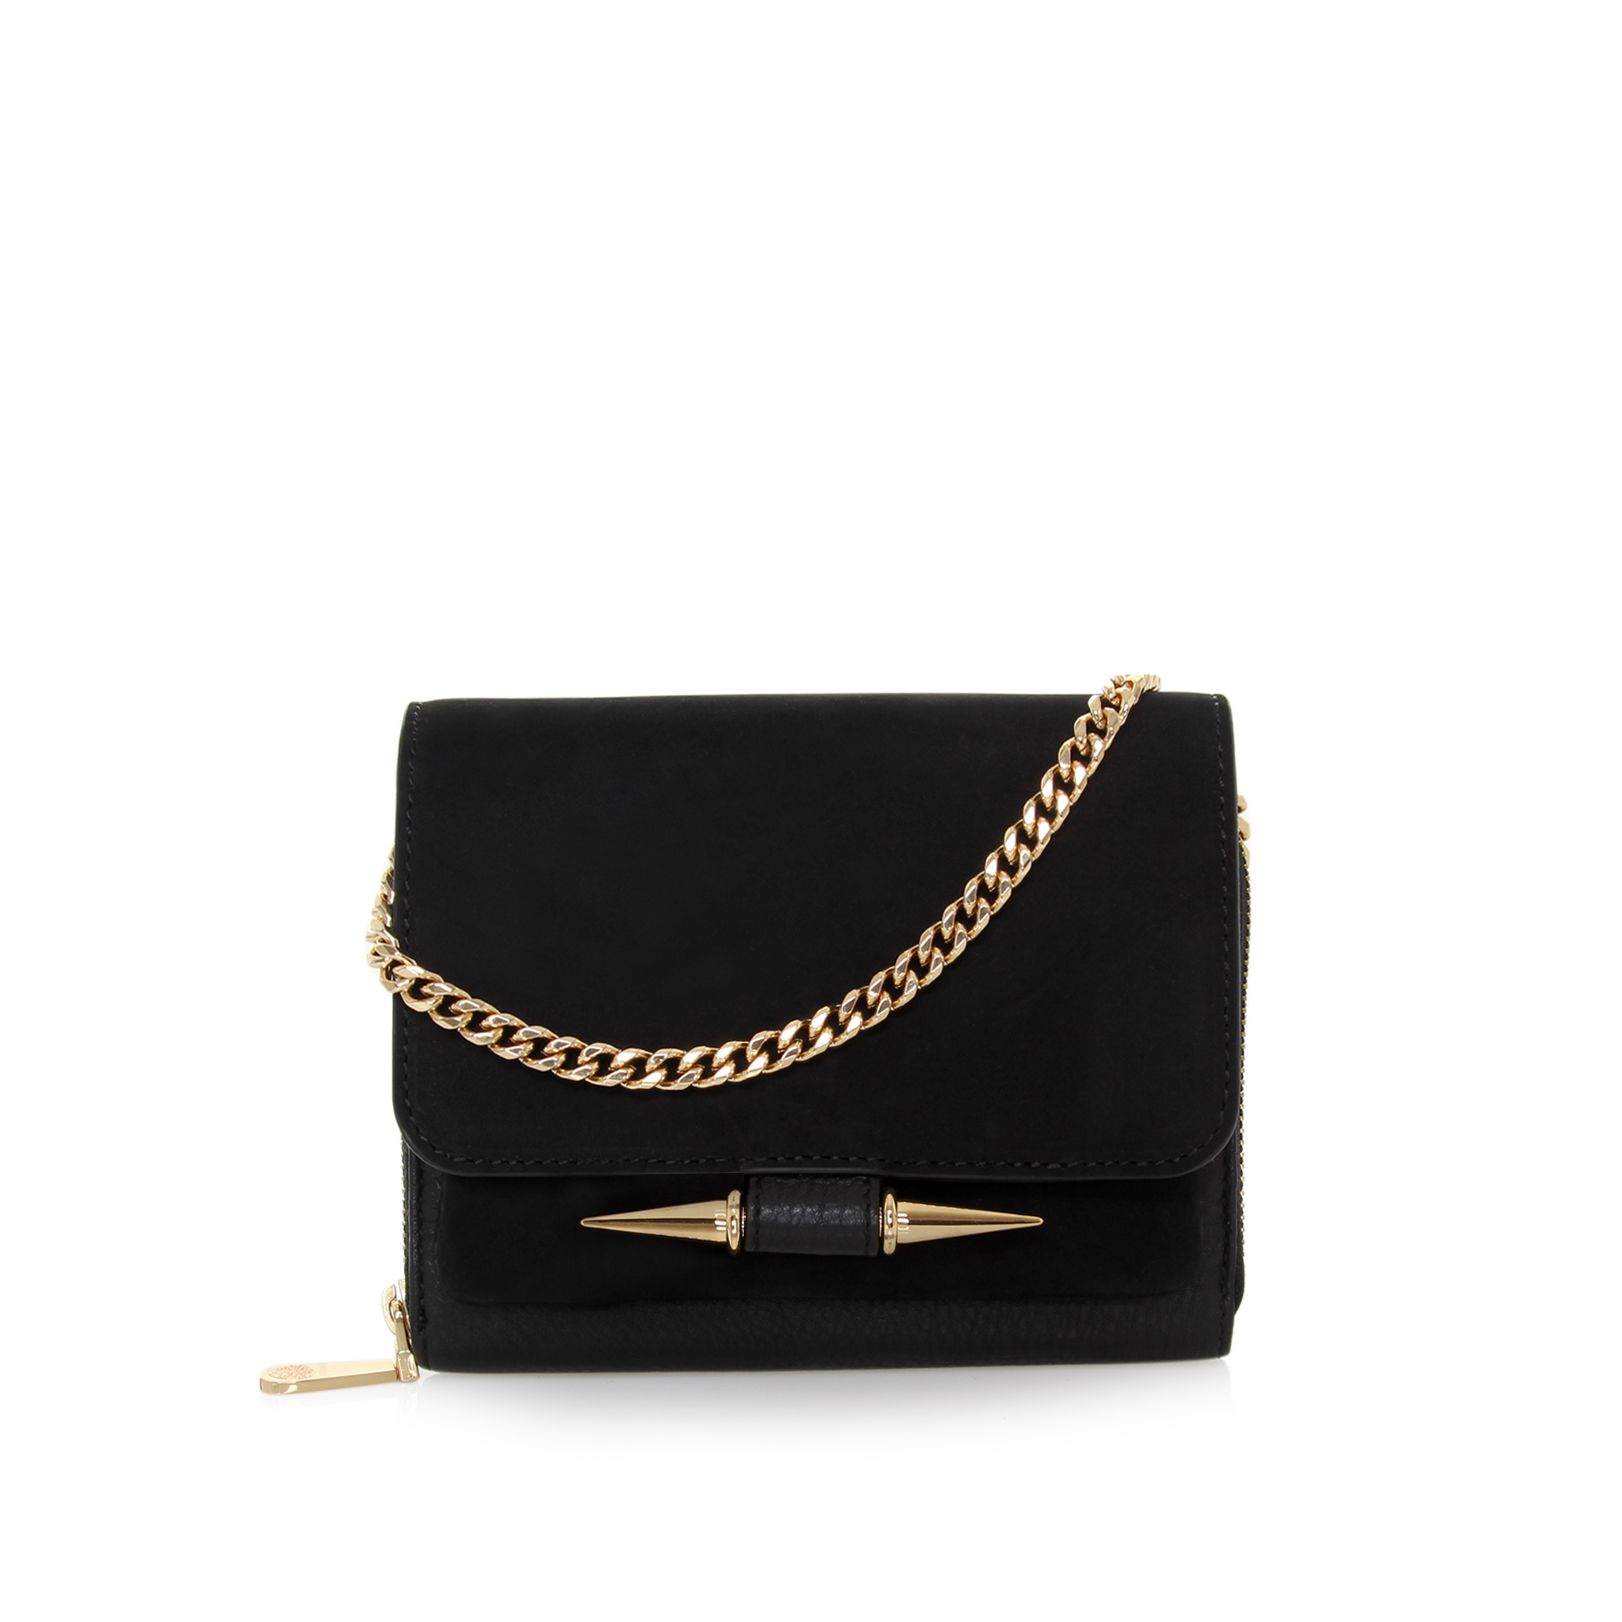 Vince Camuto Gia black crossbody bag - House of Fraser